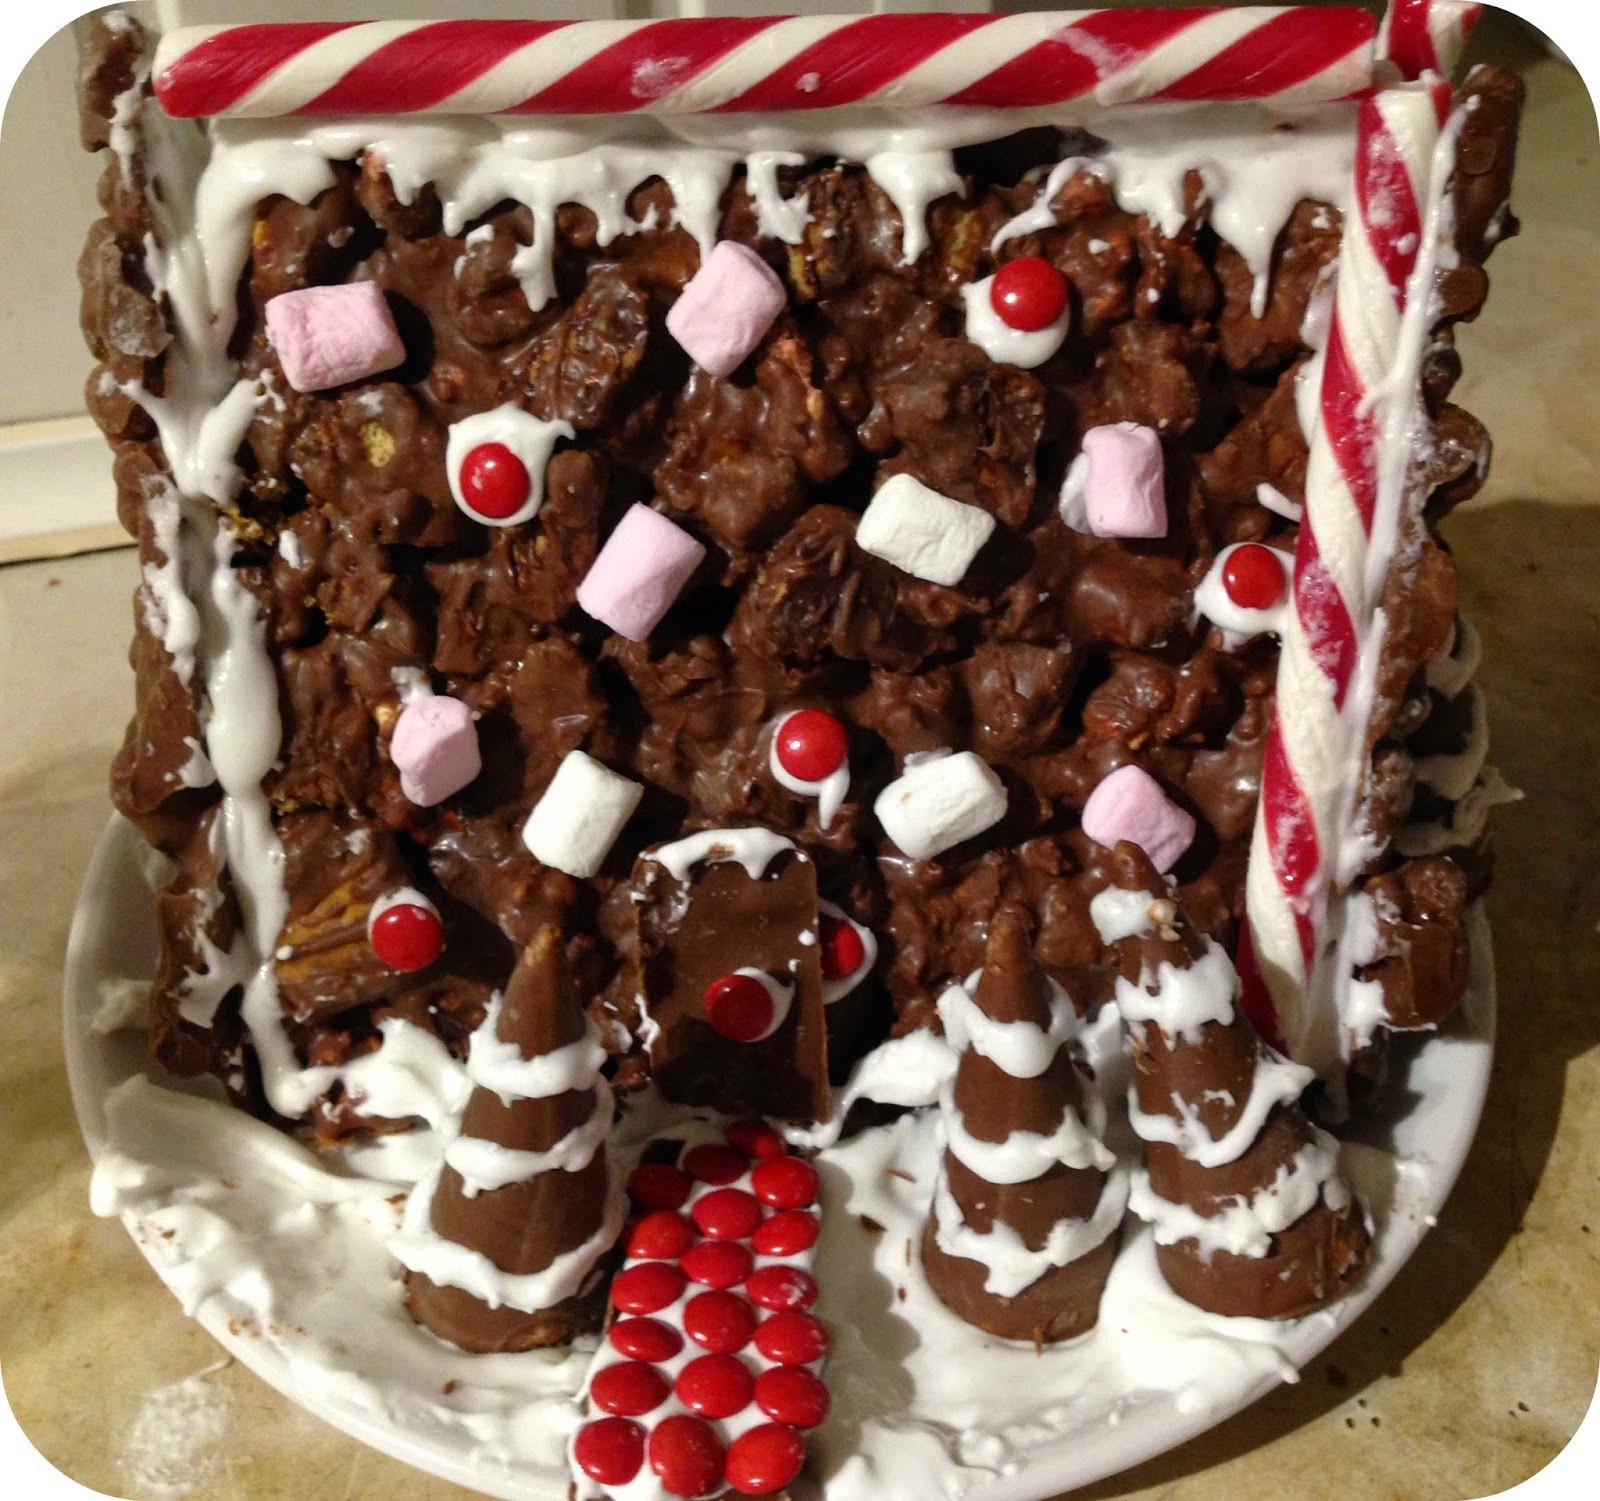 asda christmas rocky road house kit review